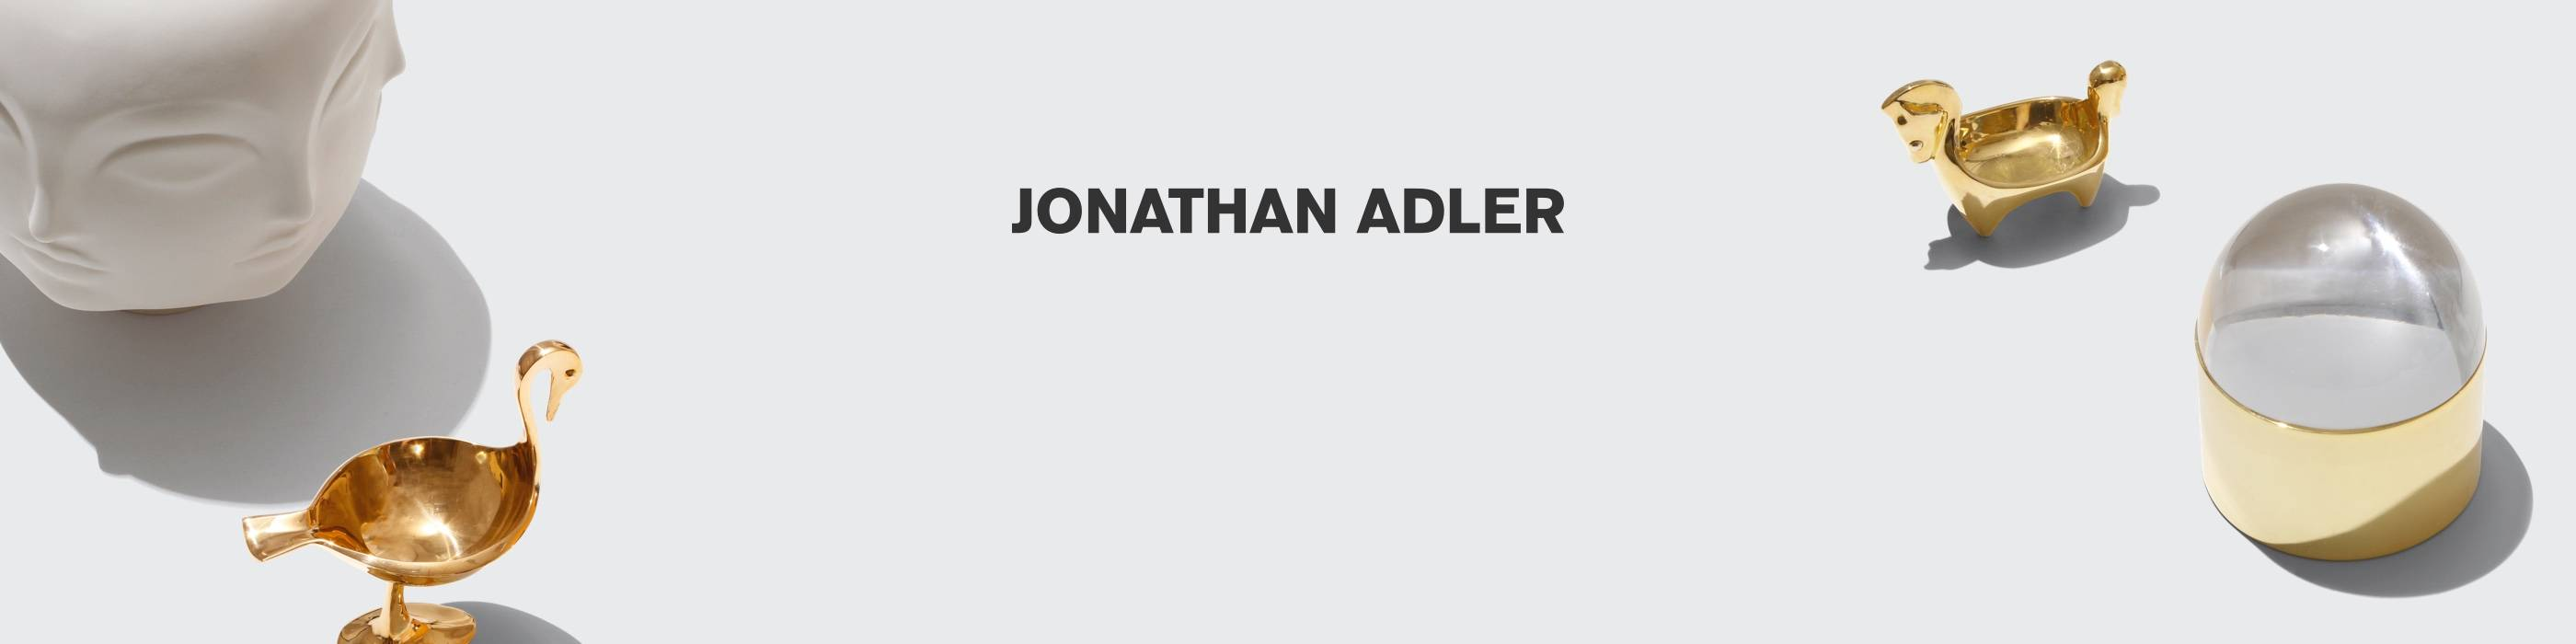 Jonathan Adler for Paperless Post